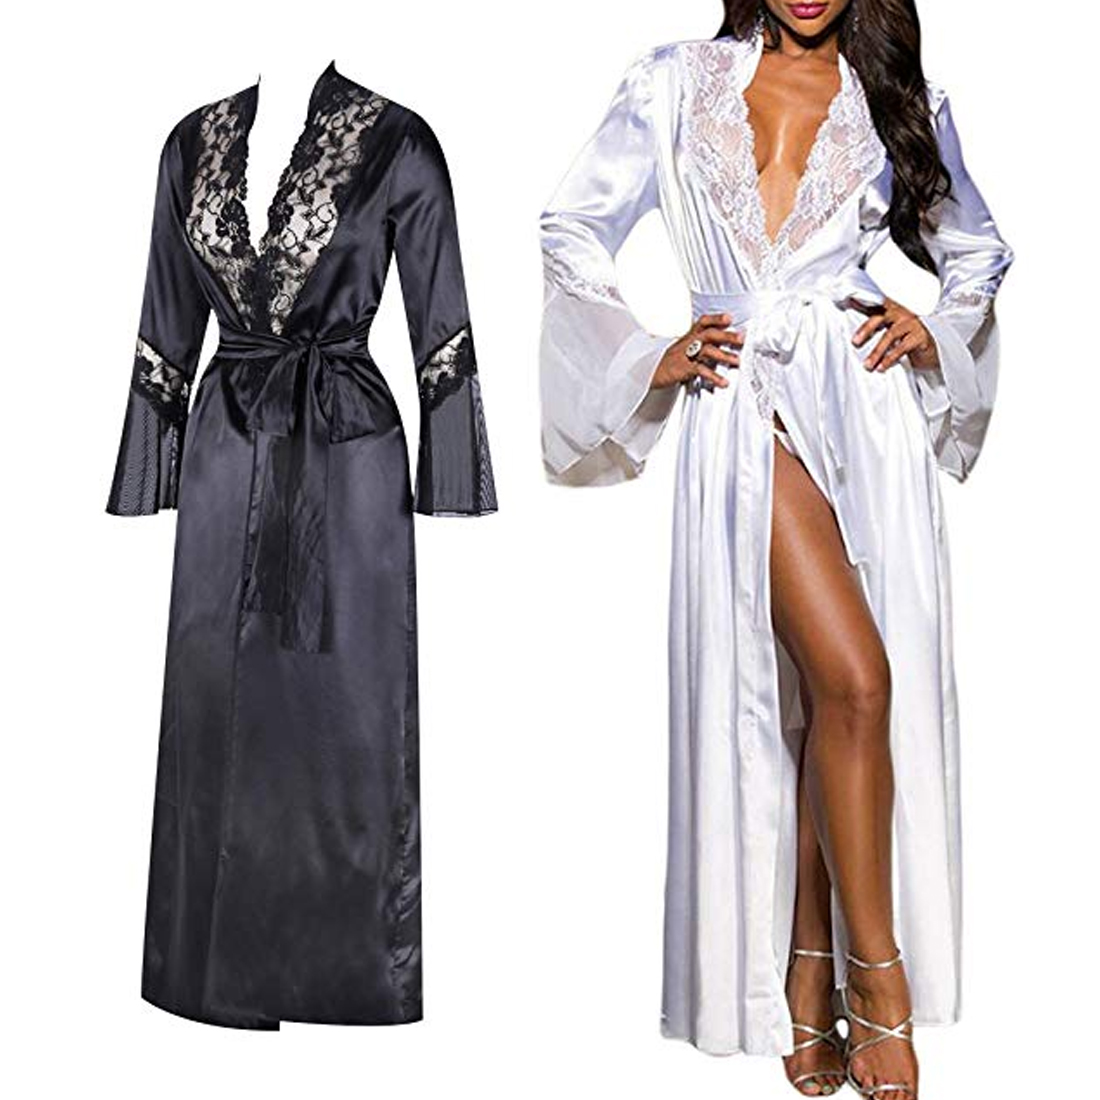 Women Ladies Sexy Long Silk Kimono Dressing Gown Bath Robe Nightgowns Sleepshirts Nightdress Cotton Black White Vestido De Noche